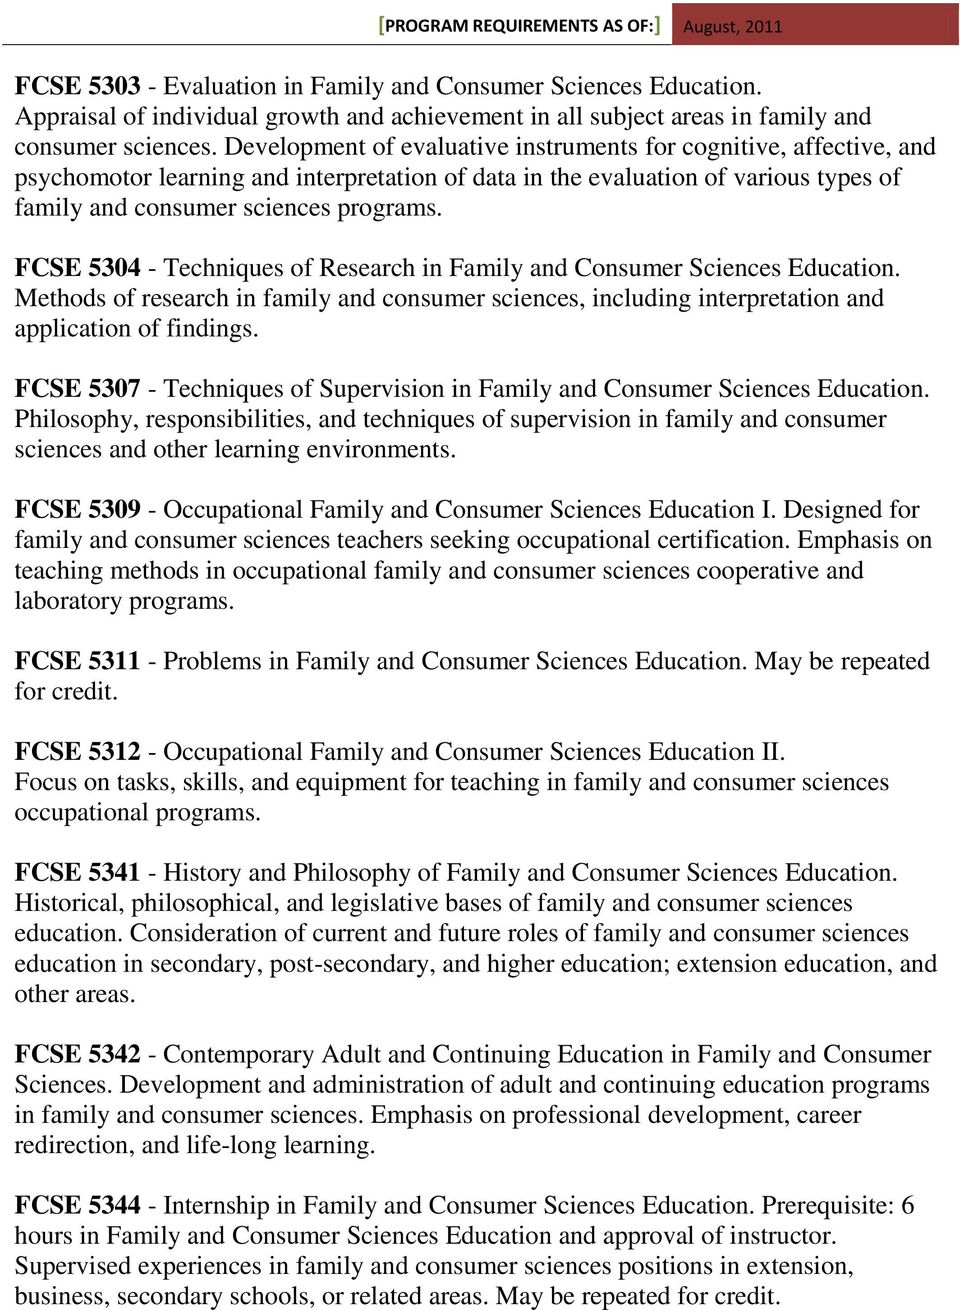 FCSE 5304 - Techniques of Research in Family and Consumer Sciences Education. Methods of research in family and consumer sciences, including interpretation and application of findings.